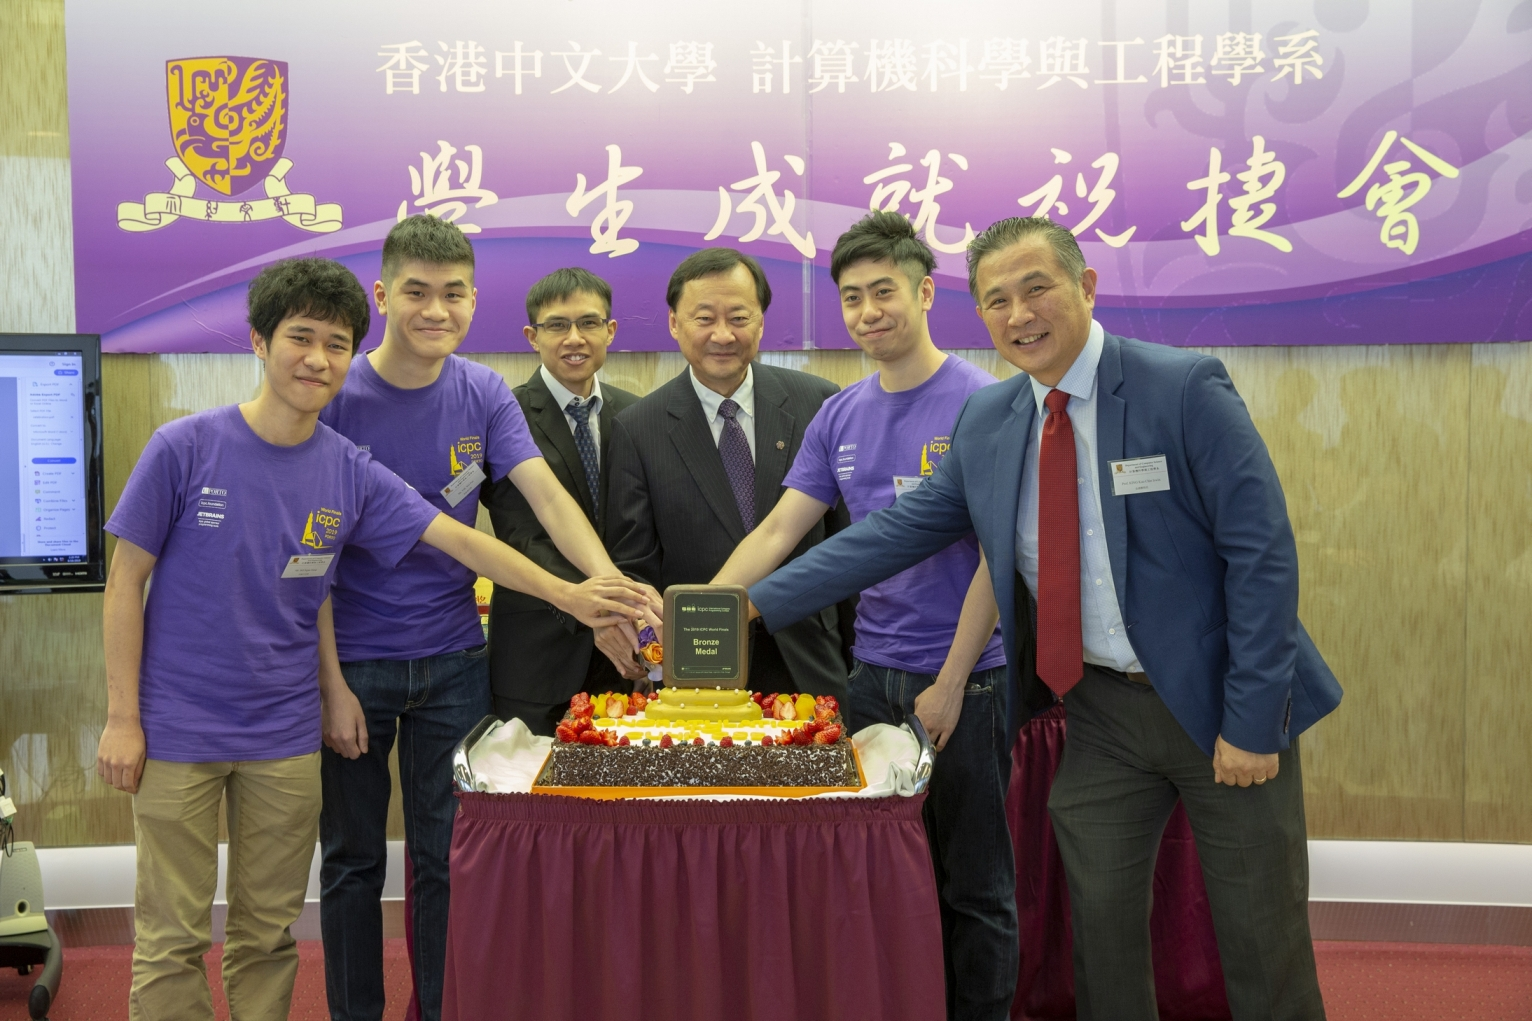 Prof. Benjamin Wah, Provost of CUHK (3rd from right); Prof. Irwin King, Associate Dean (Education), Faculty of Engineering (1st from right); Prof. Chan Siu On, Assistant Professor of the Department of Computer Science and Engineering (3rd from left); celebrate with Ho Ngan-Hang (1s  from left), Yik Wai-Pan (2nd from right) and Poon Lik-Hang (2nd from left) from the CUHK Programming Team for winning a bronze medal at the 43rd Annual World Finals of the International Collegiate Programming Contest.